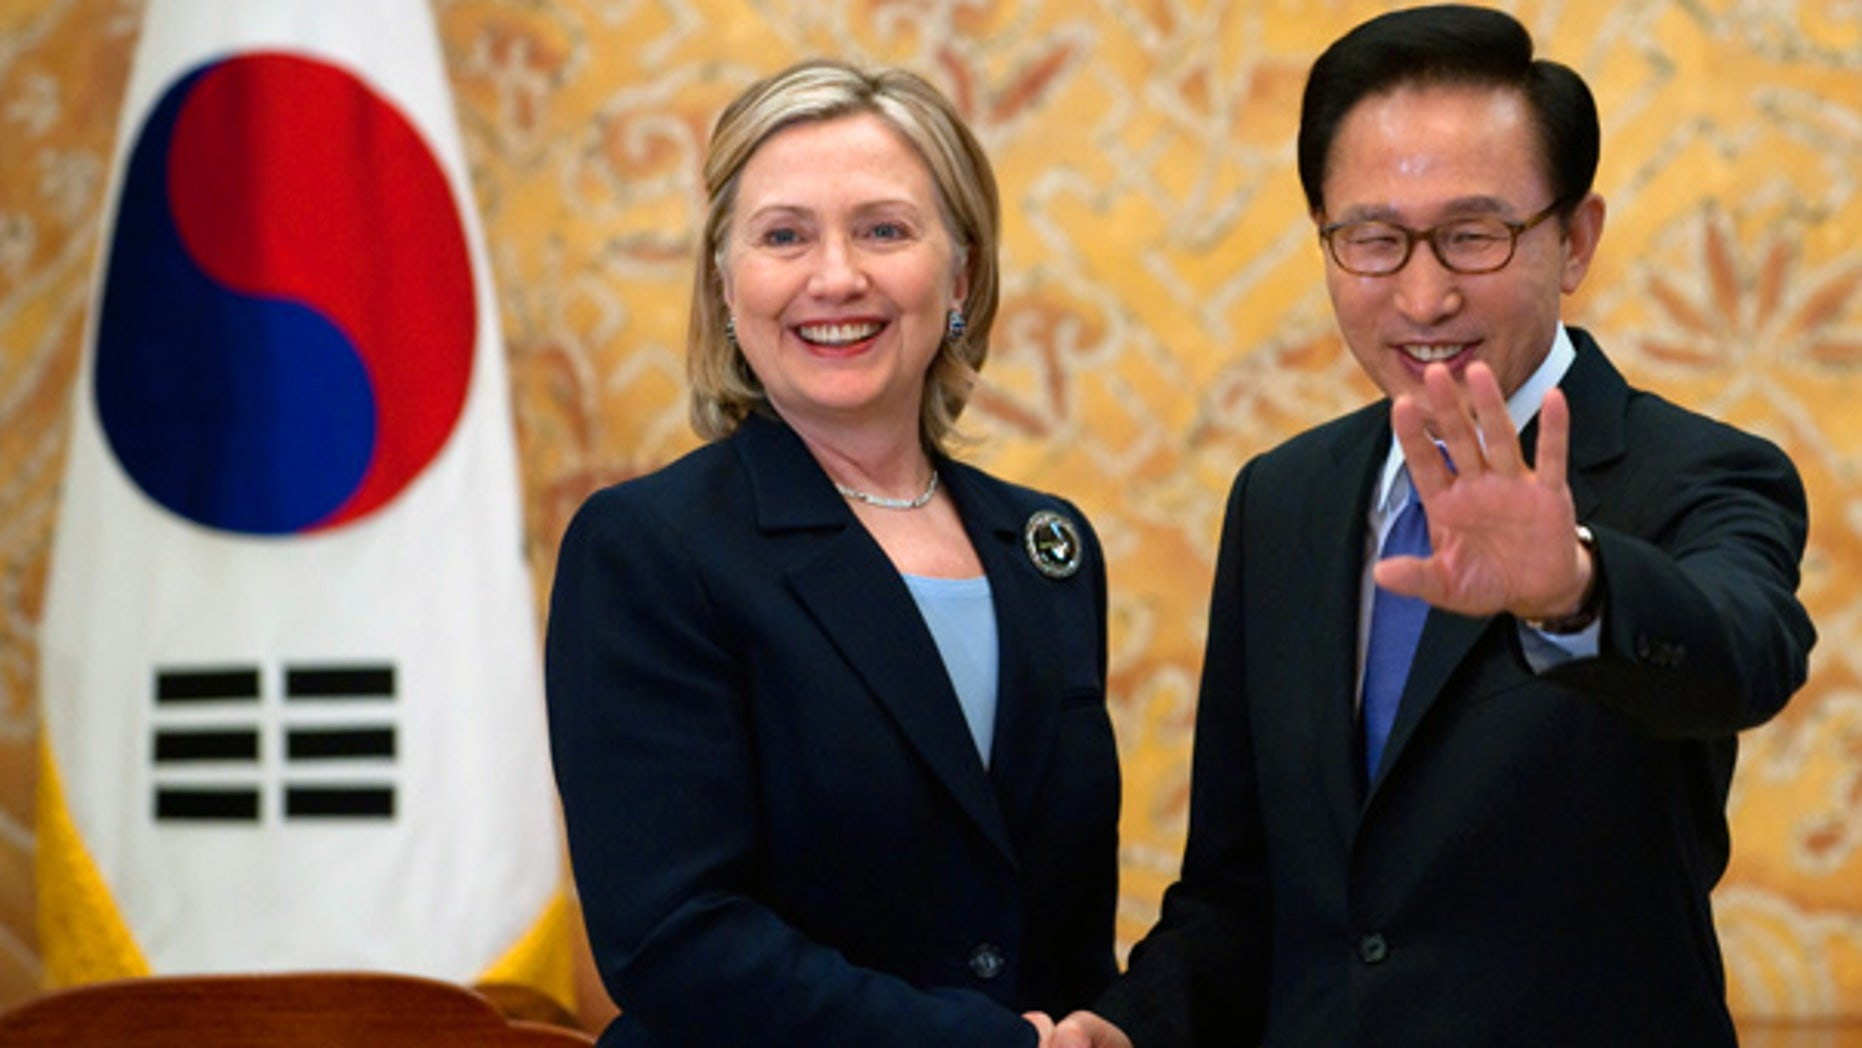 May 26: South Korean President Lee Myung-bak, right, shakes hands with U.S. Secretary of State Hillary Rodham Clinton during their meeting at the Presidential Blue House in Seoul, South Korea.